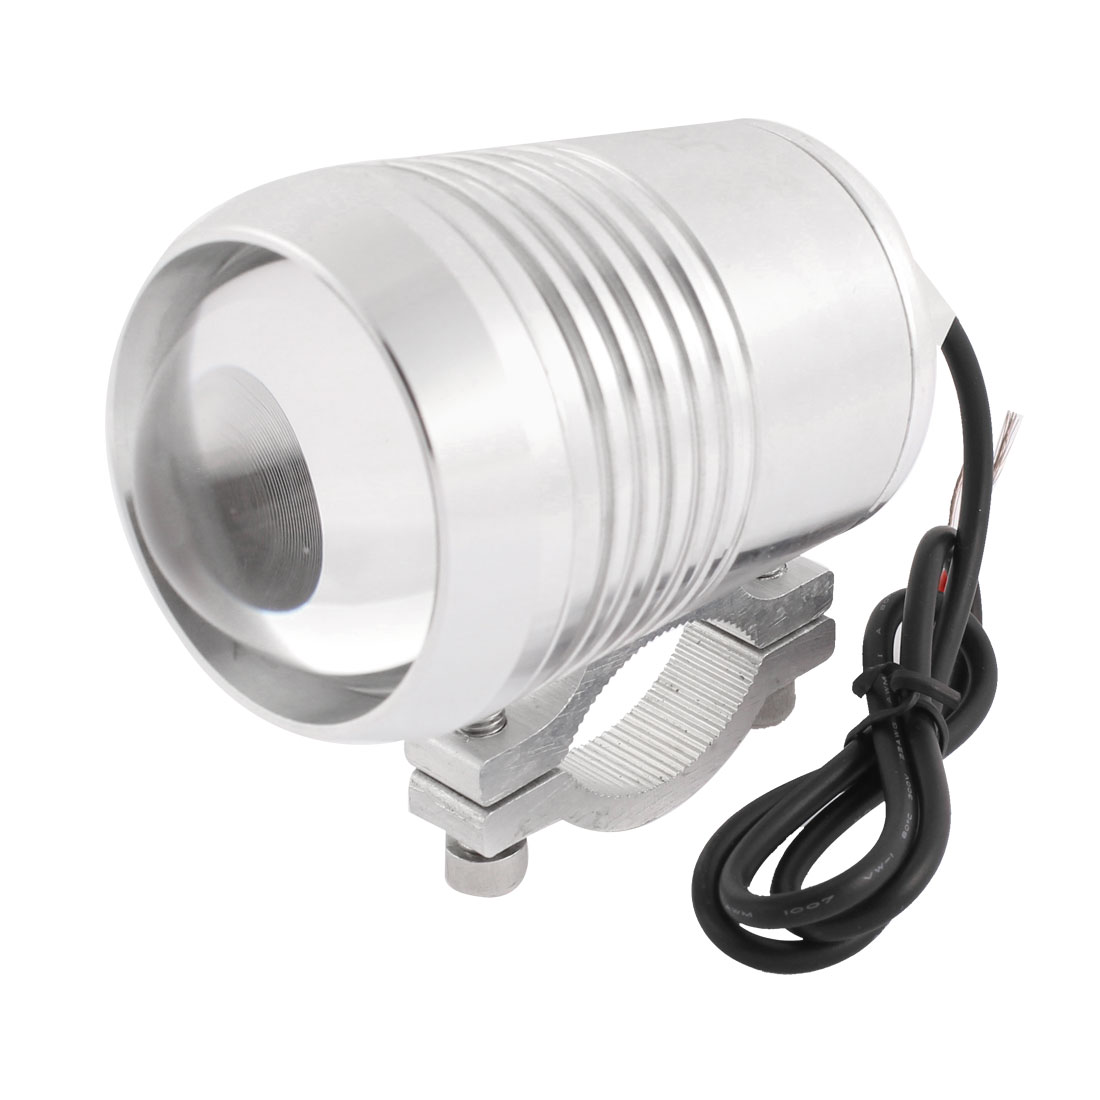 Motorcycle Silver Tone Shell White COD Decorative Spot Light 9W-12W